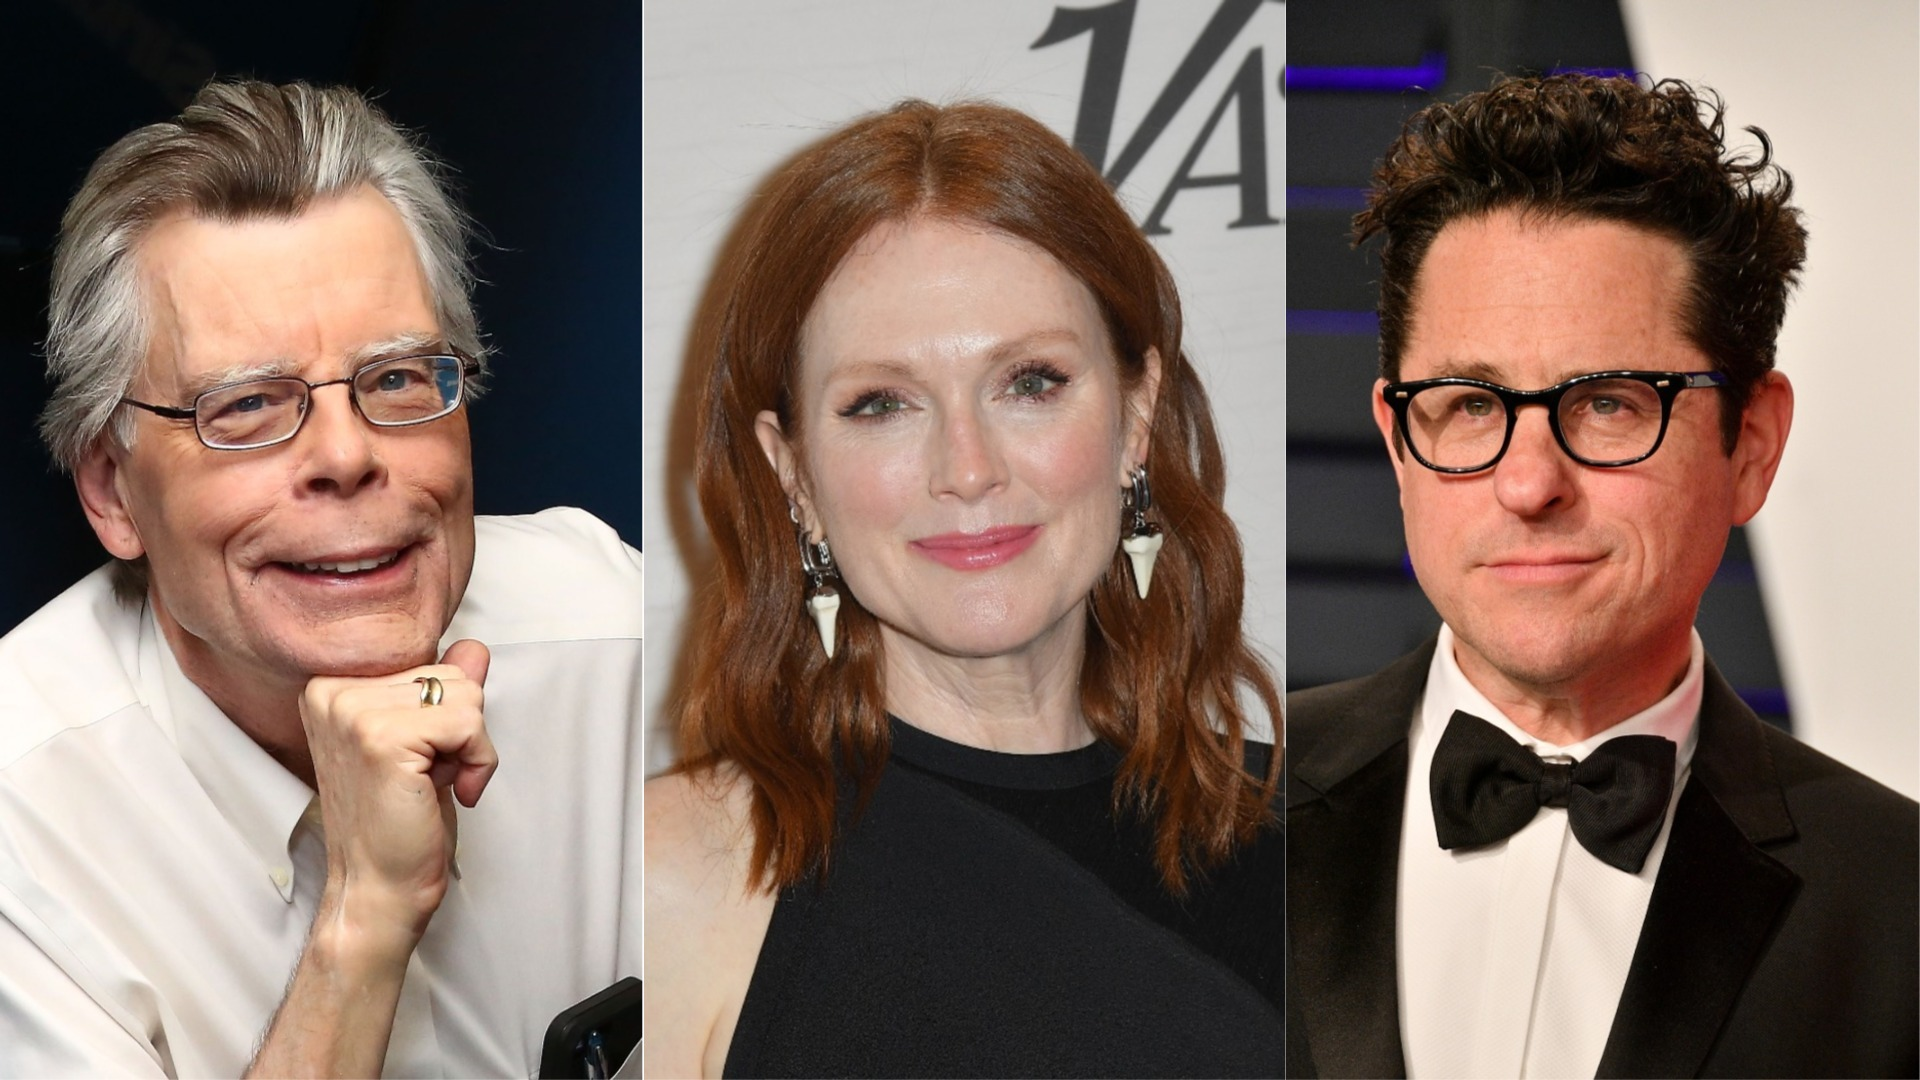 Stephen King, Julianne Moore e J.J. Abrams